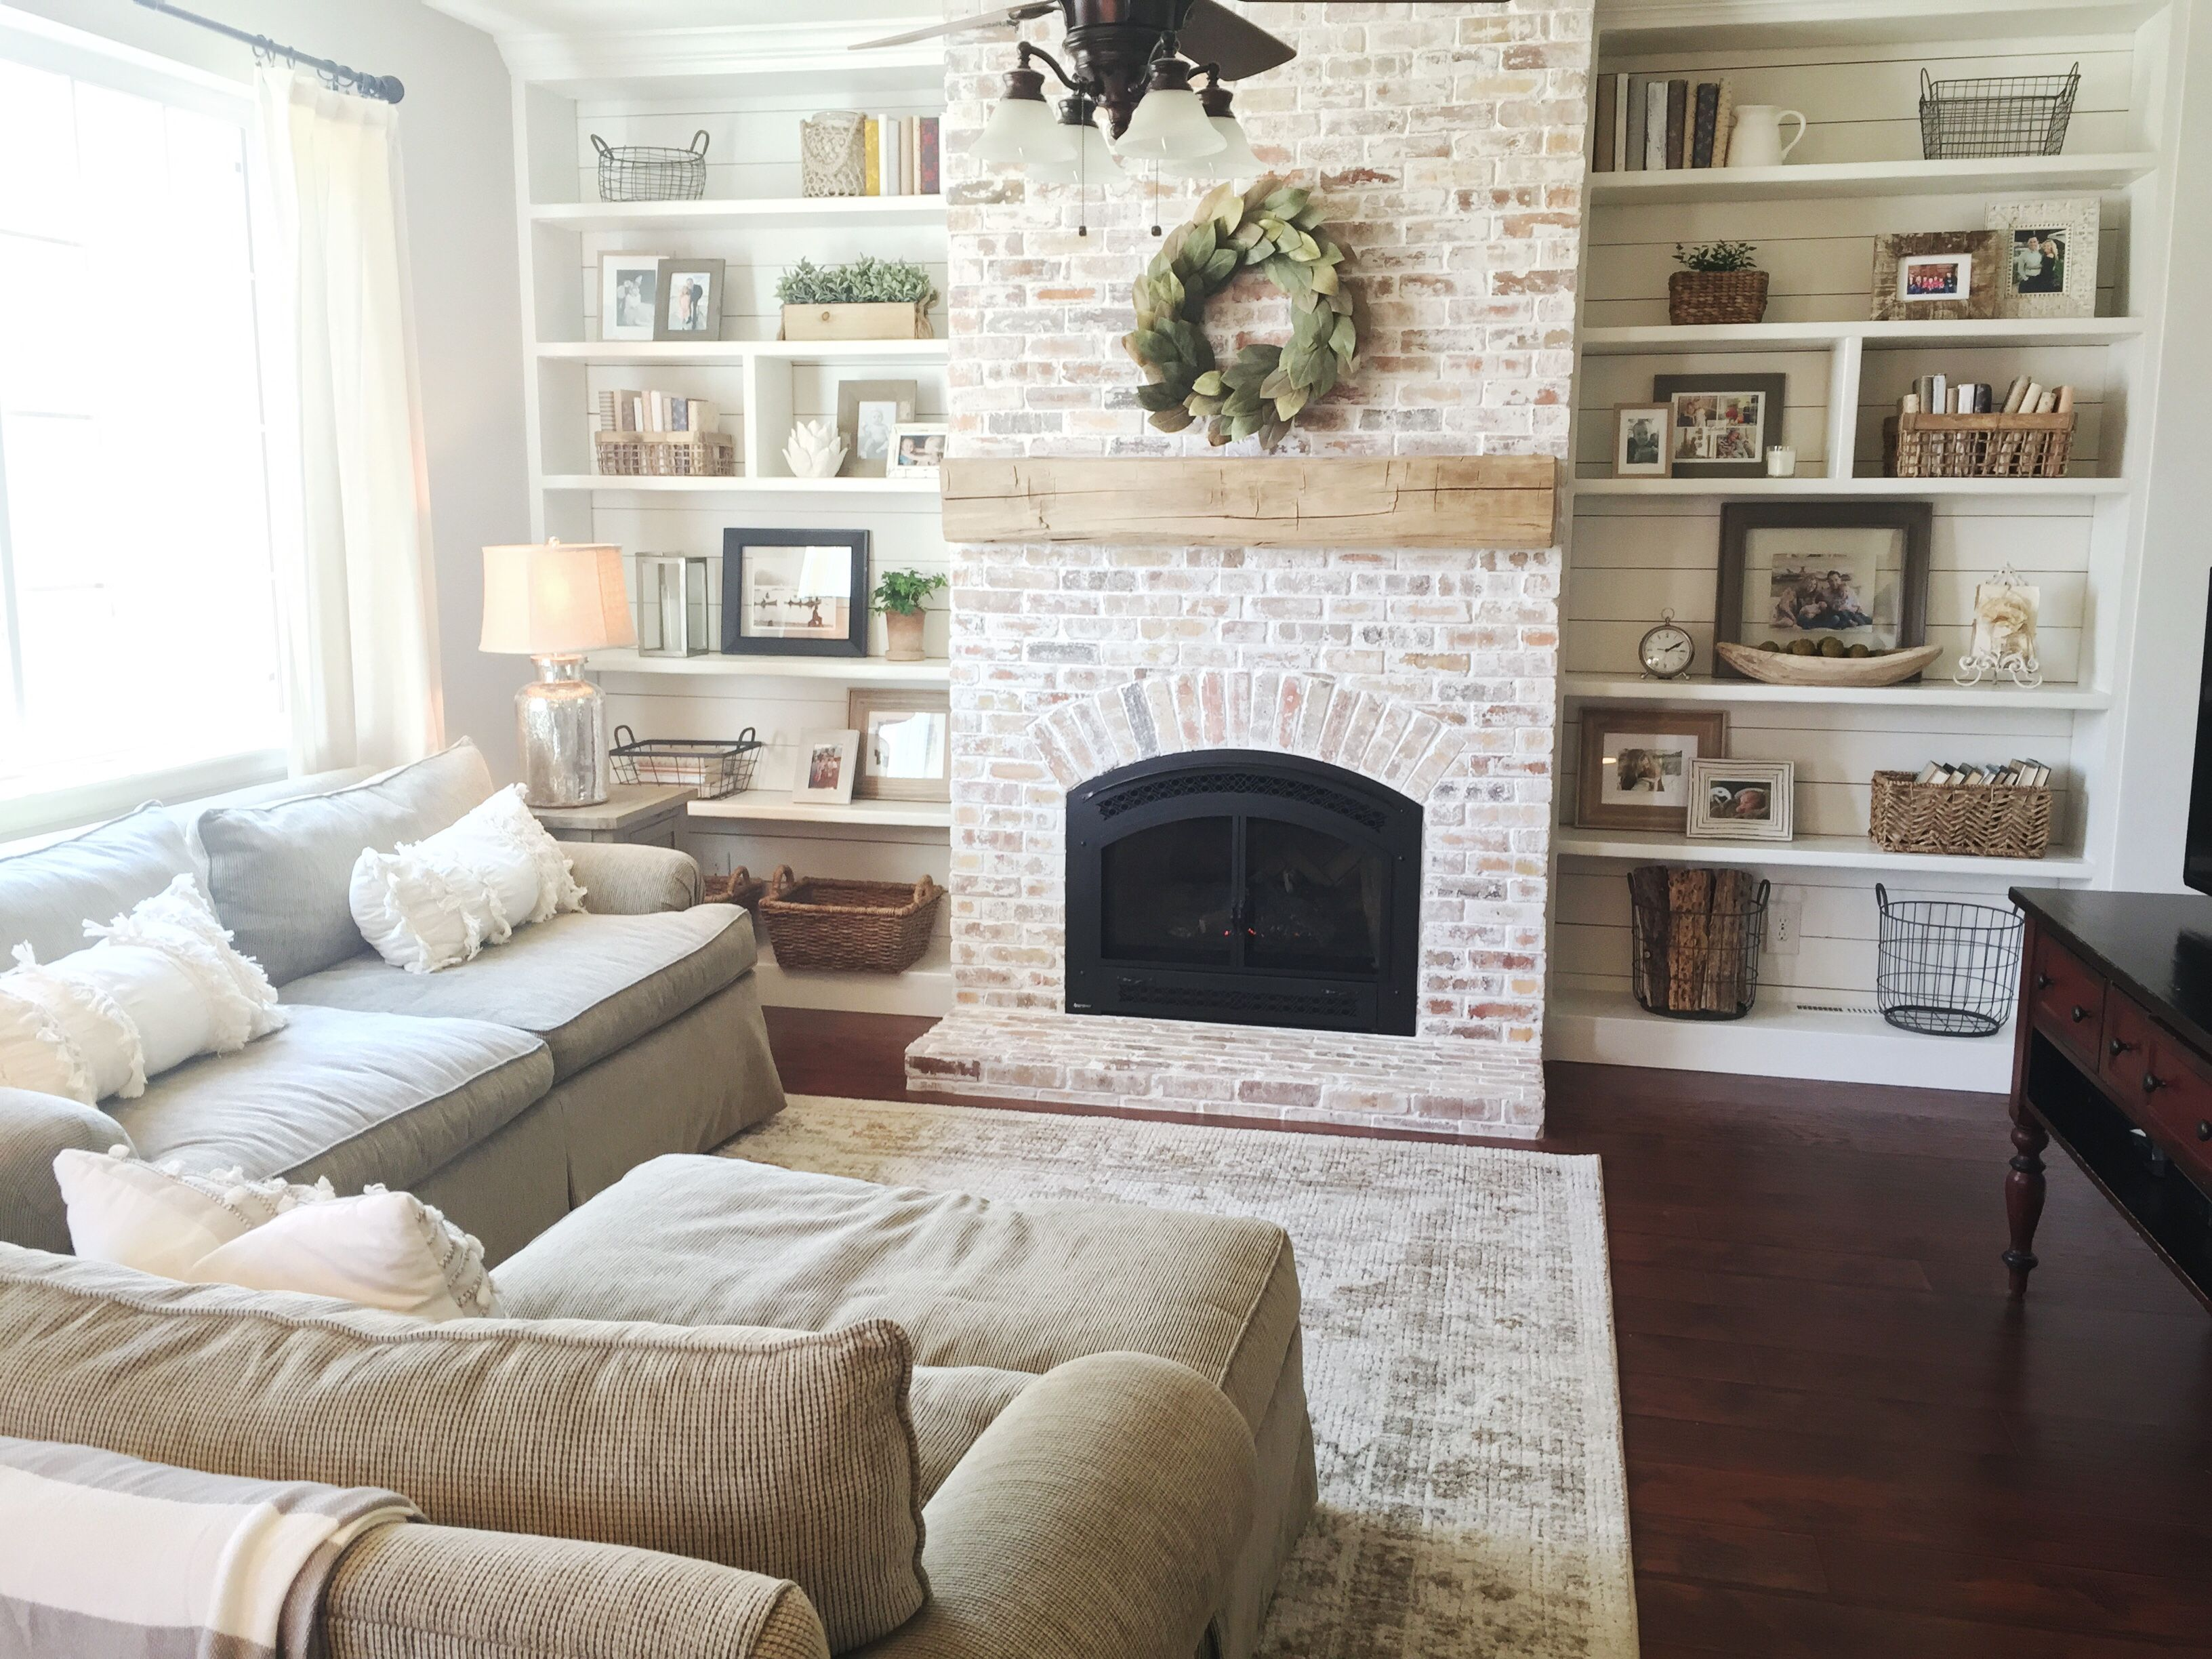 Built ins shiplap whitewash brick fireplace bookshelf styling